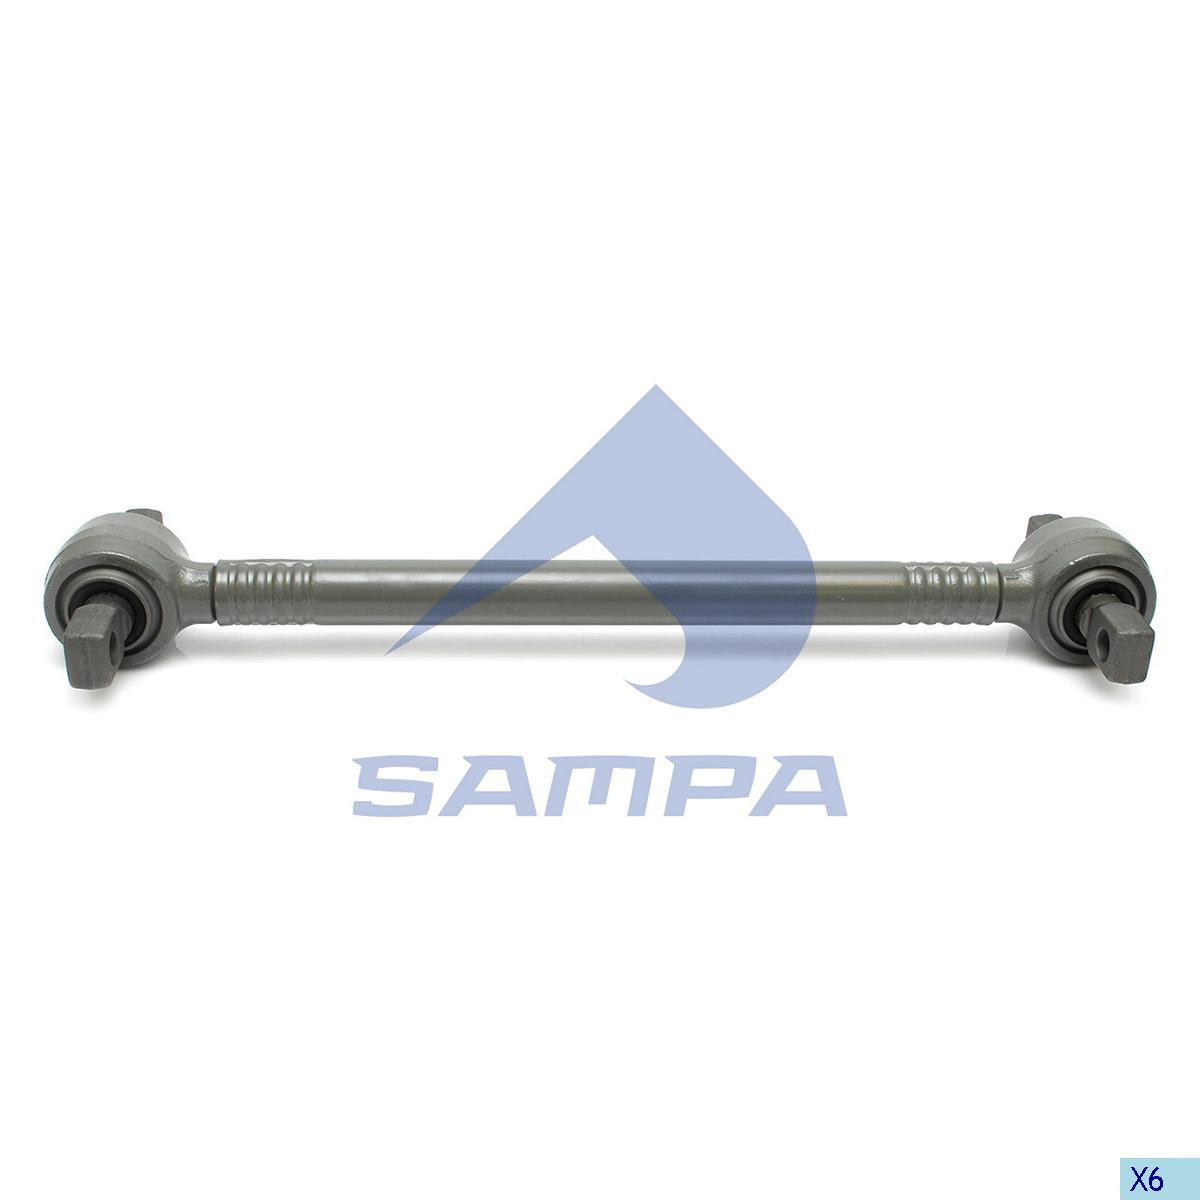 Torque Rod, Iveco, Suspension